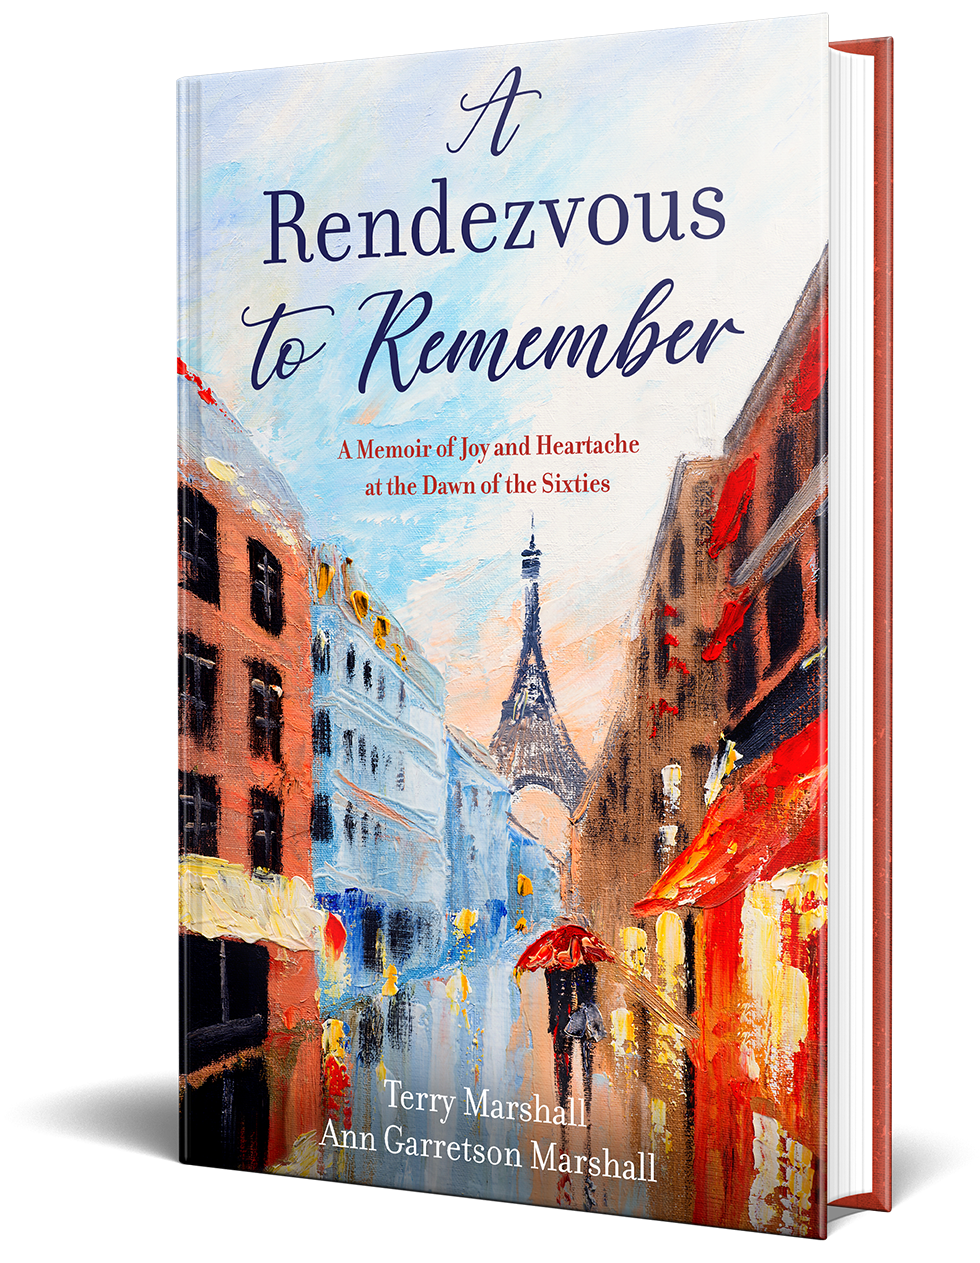 A Rendezvous to Remember